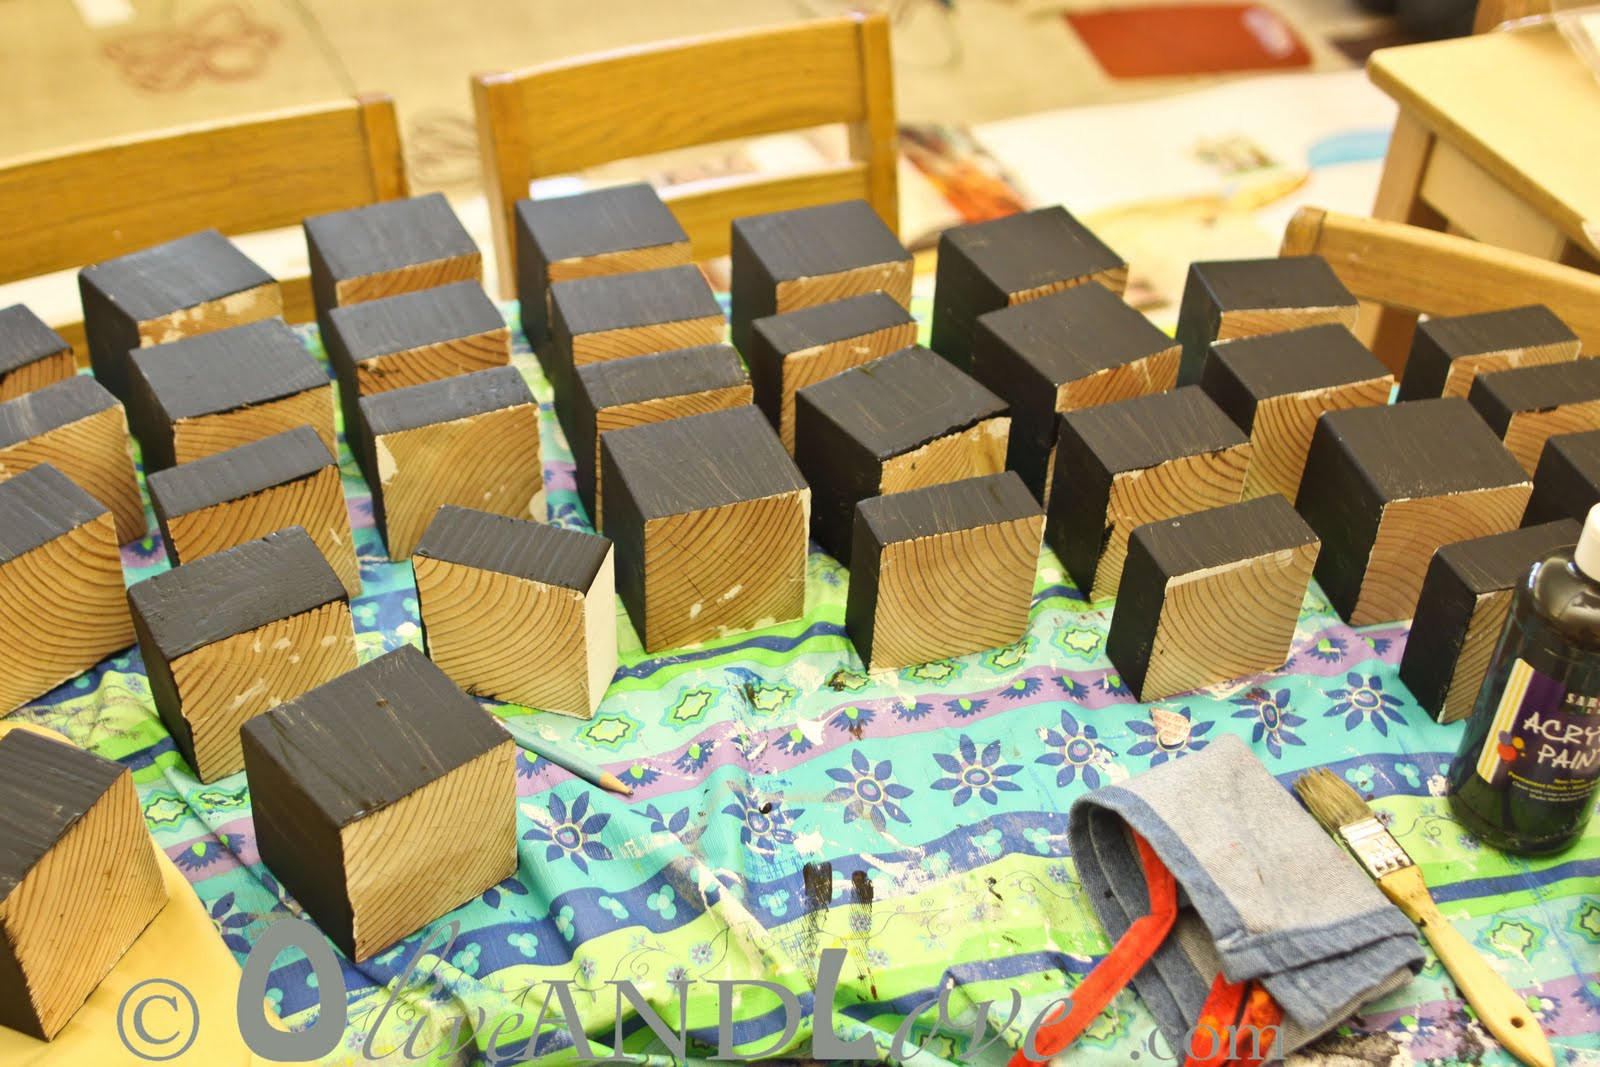 Best ideas about 3D Art Projects For Kids . Save or Pin 3D wooden blocks – Children's Auction Art Project Now.